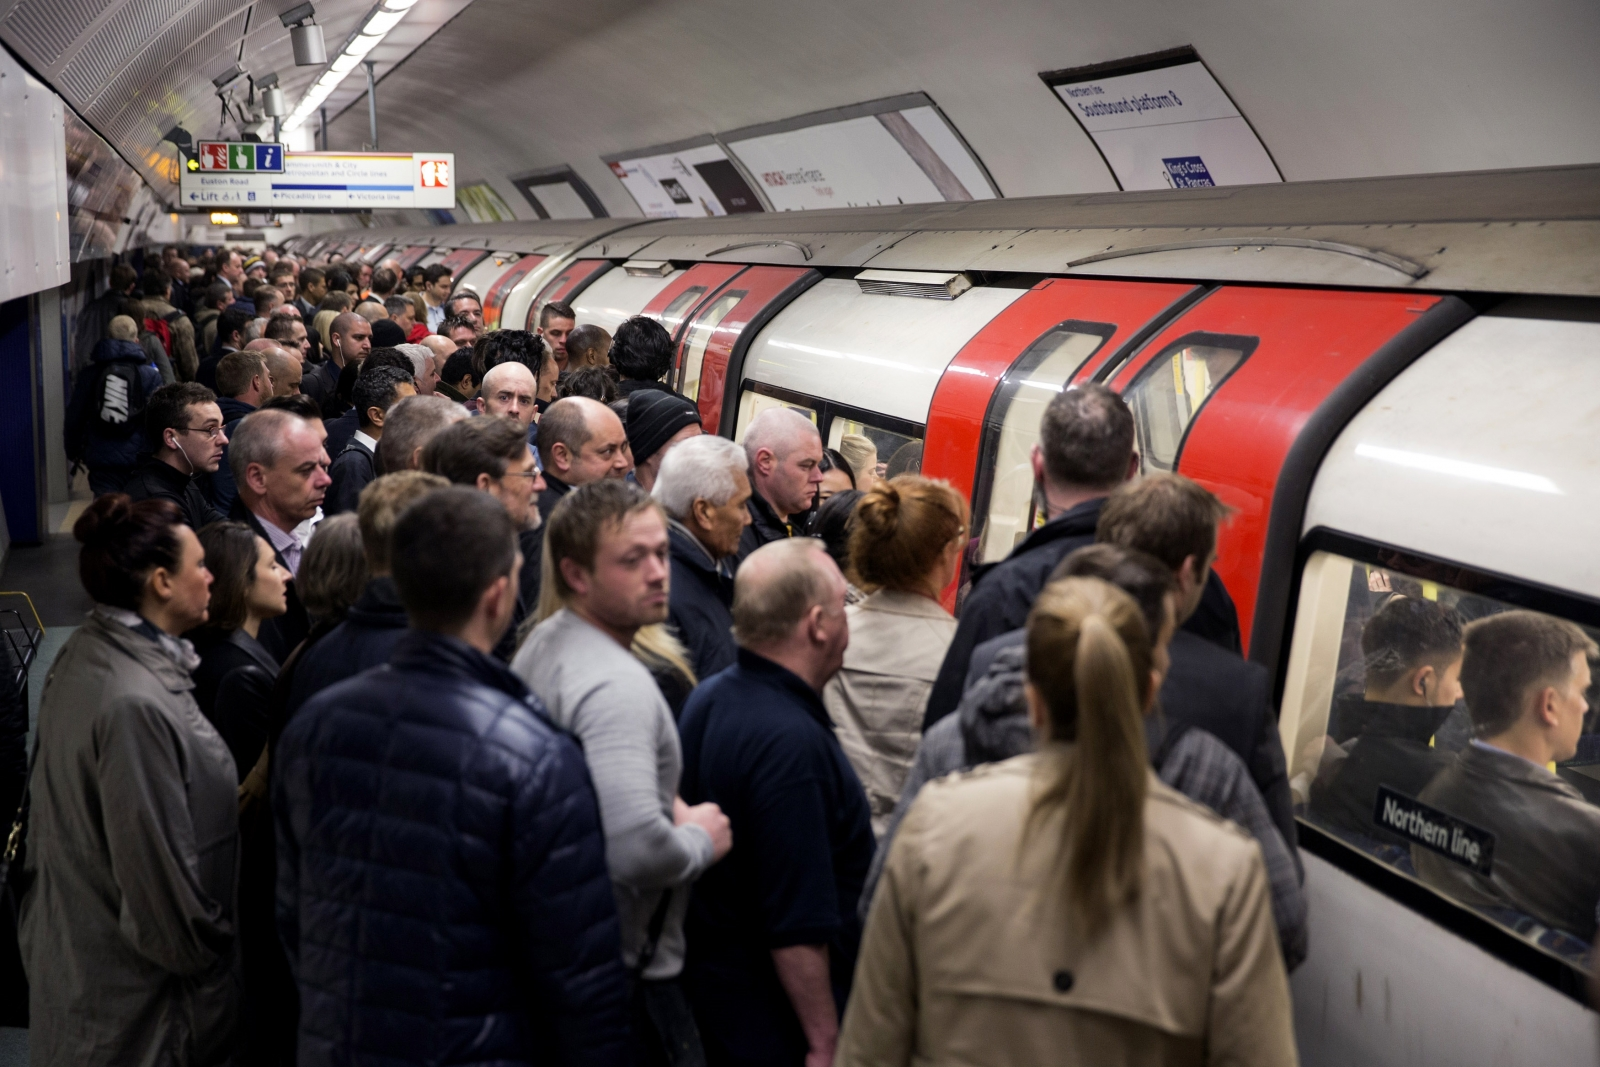 tube strike london underground